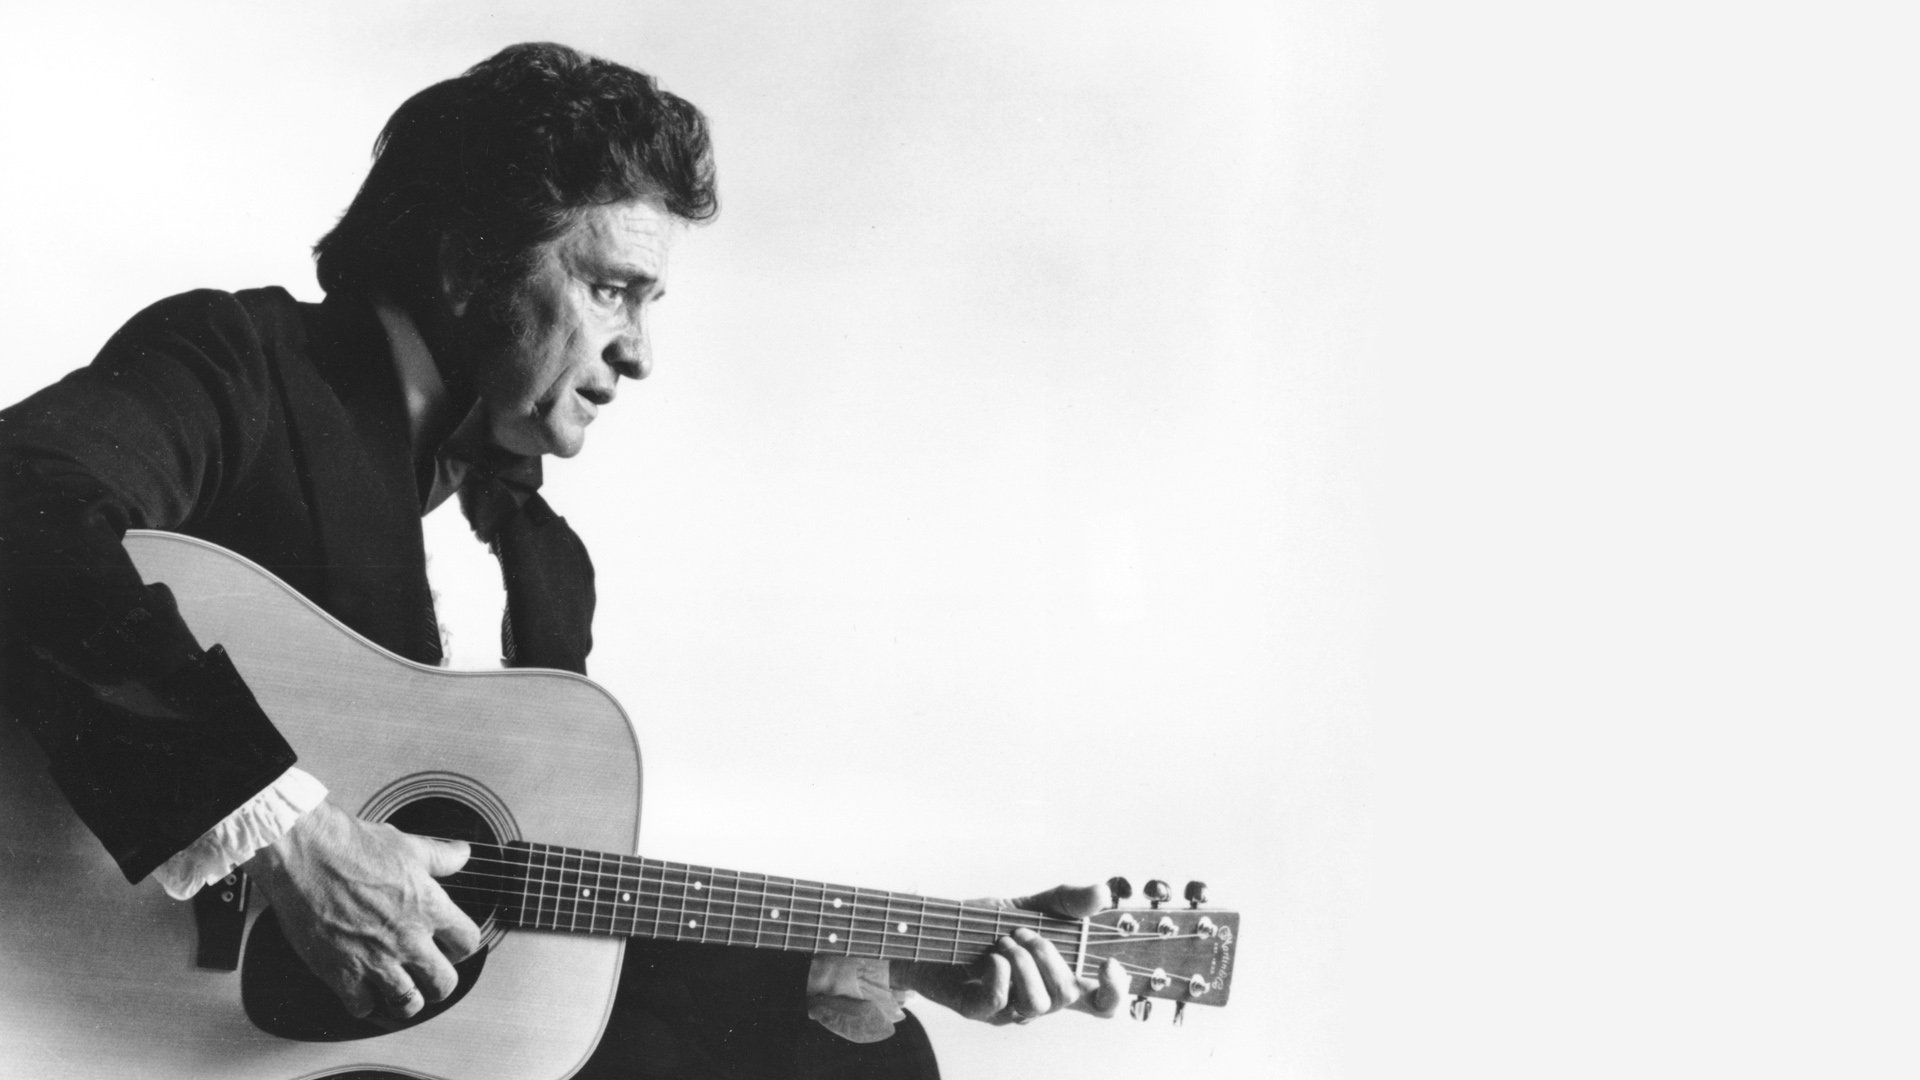 High Contrast Wallpaper For Iphone X Johnny Cash Full Hd Wallpaper And Background Image